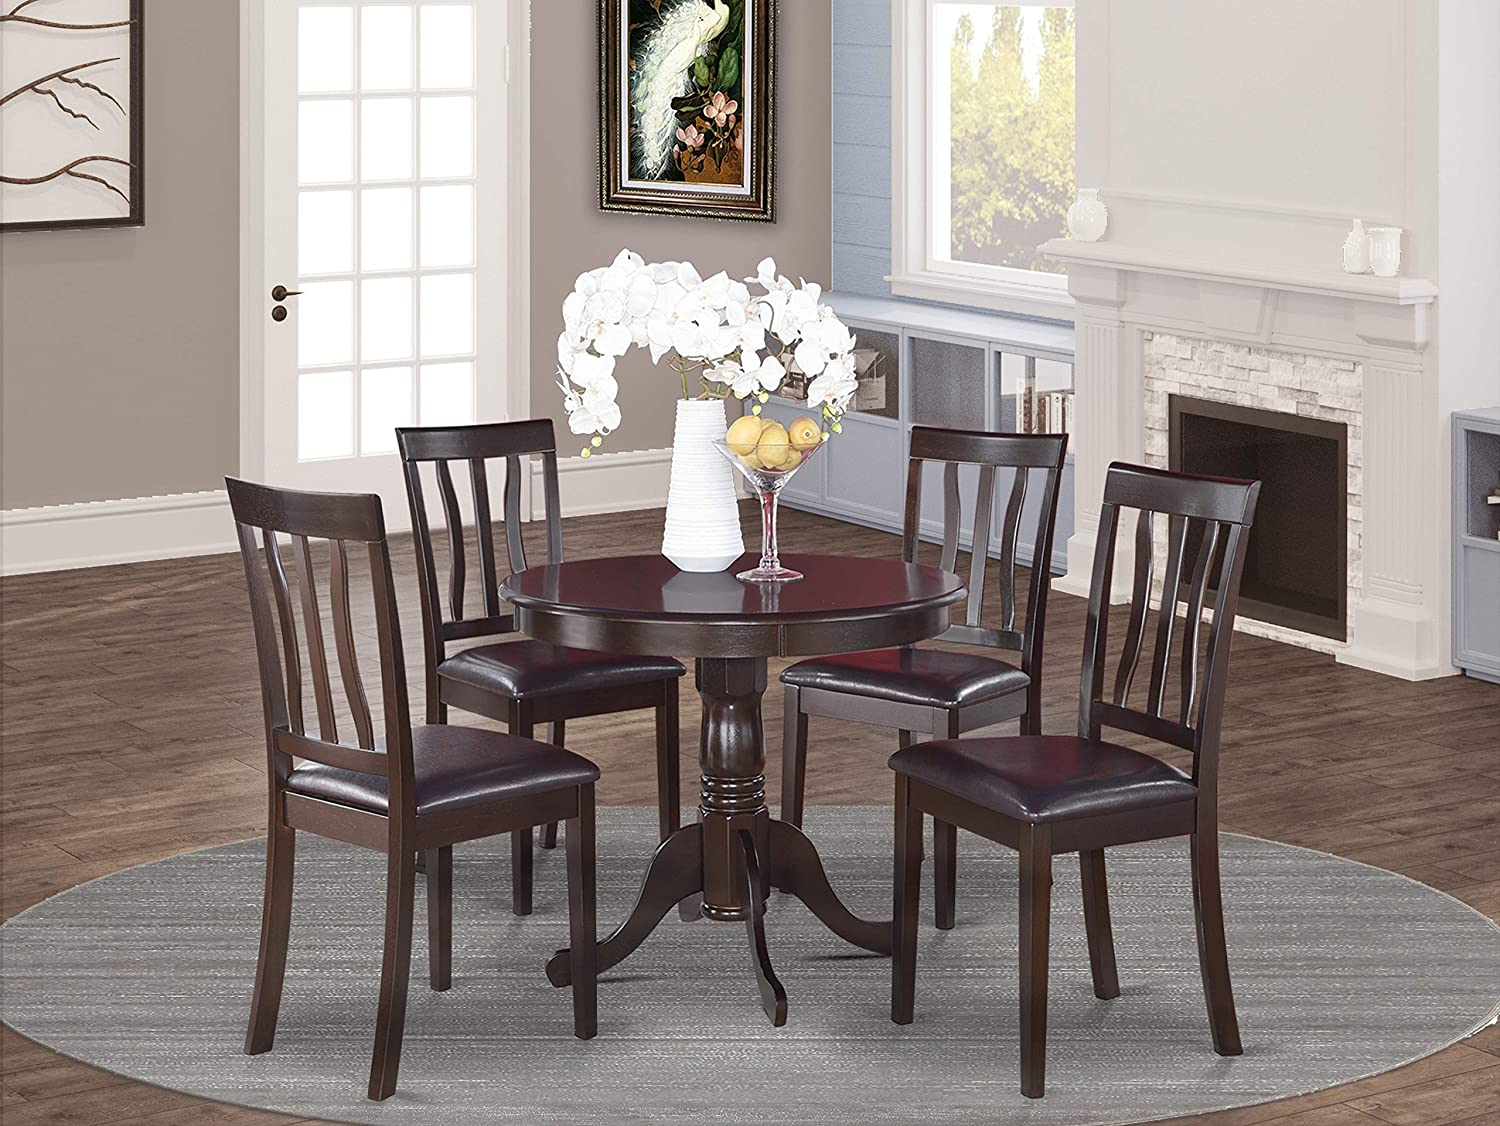 Amazon Com East West Furniture Dining Table Set 4 Fantastic Chairs For Dining Room A Gorgeous Wood Kitchen Table Pu Leather Seat And Cappuccino Finnish Dinner Table Table Chair Sets